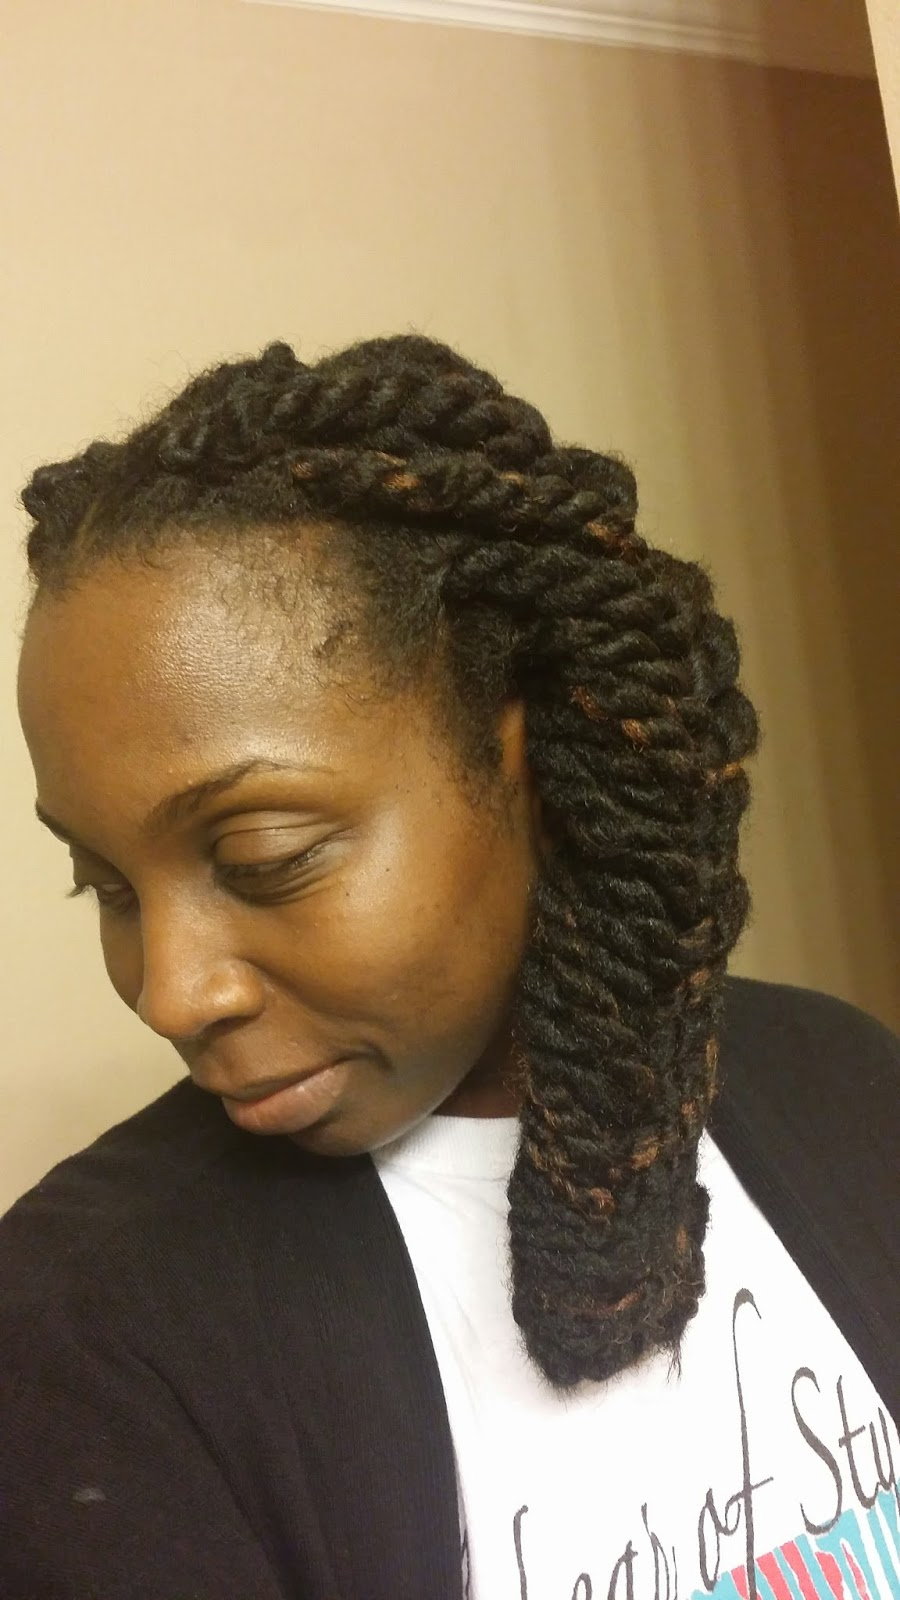 Chuky Kinky Twists